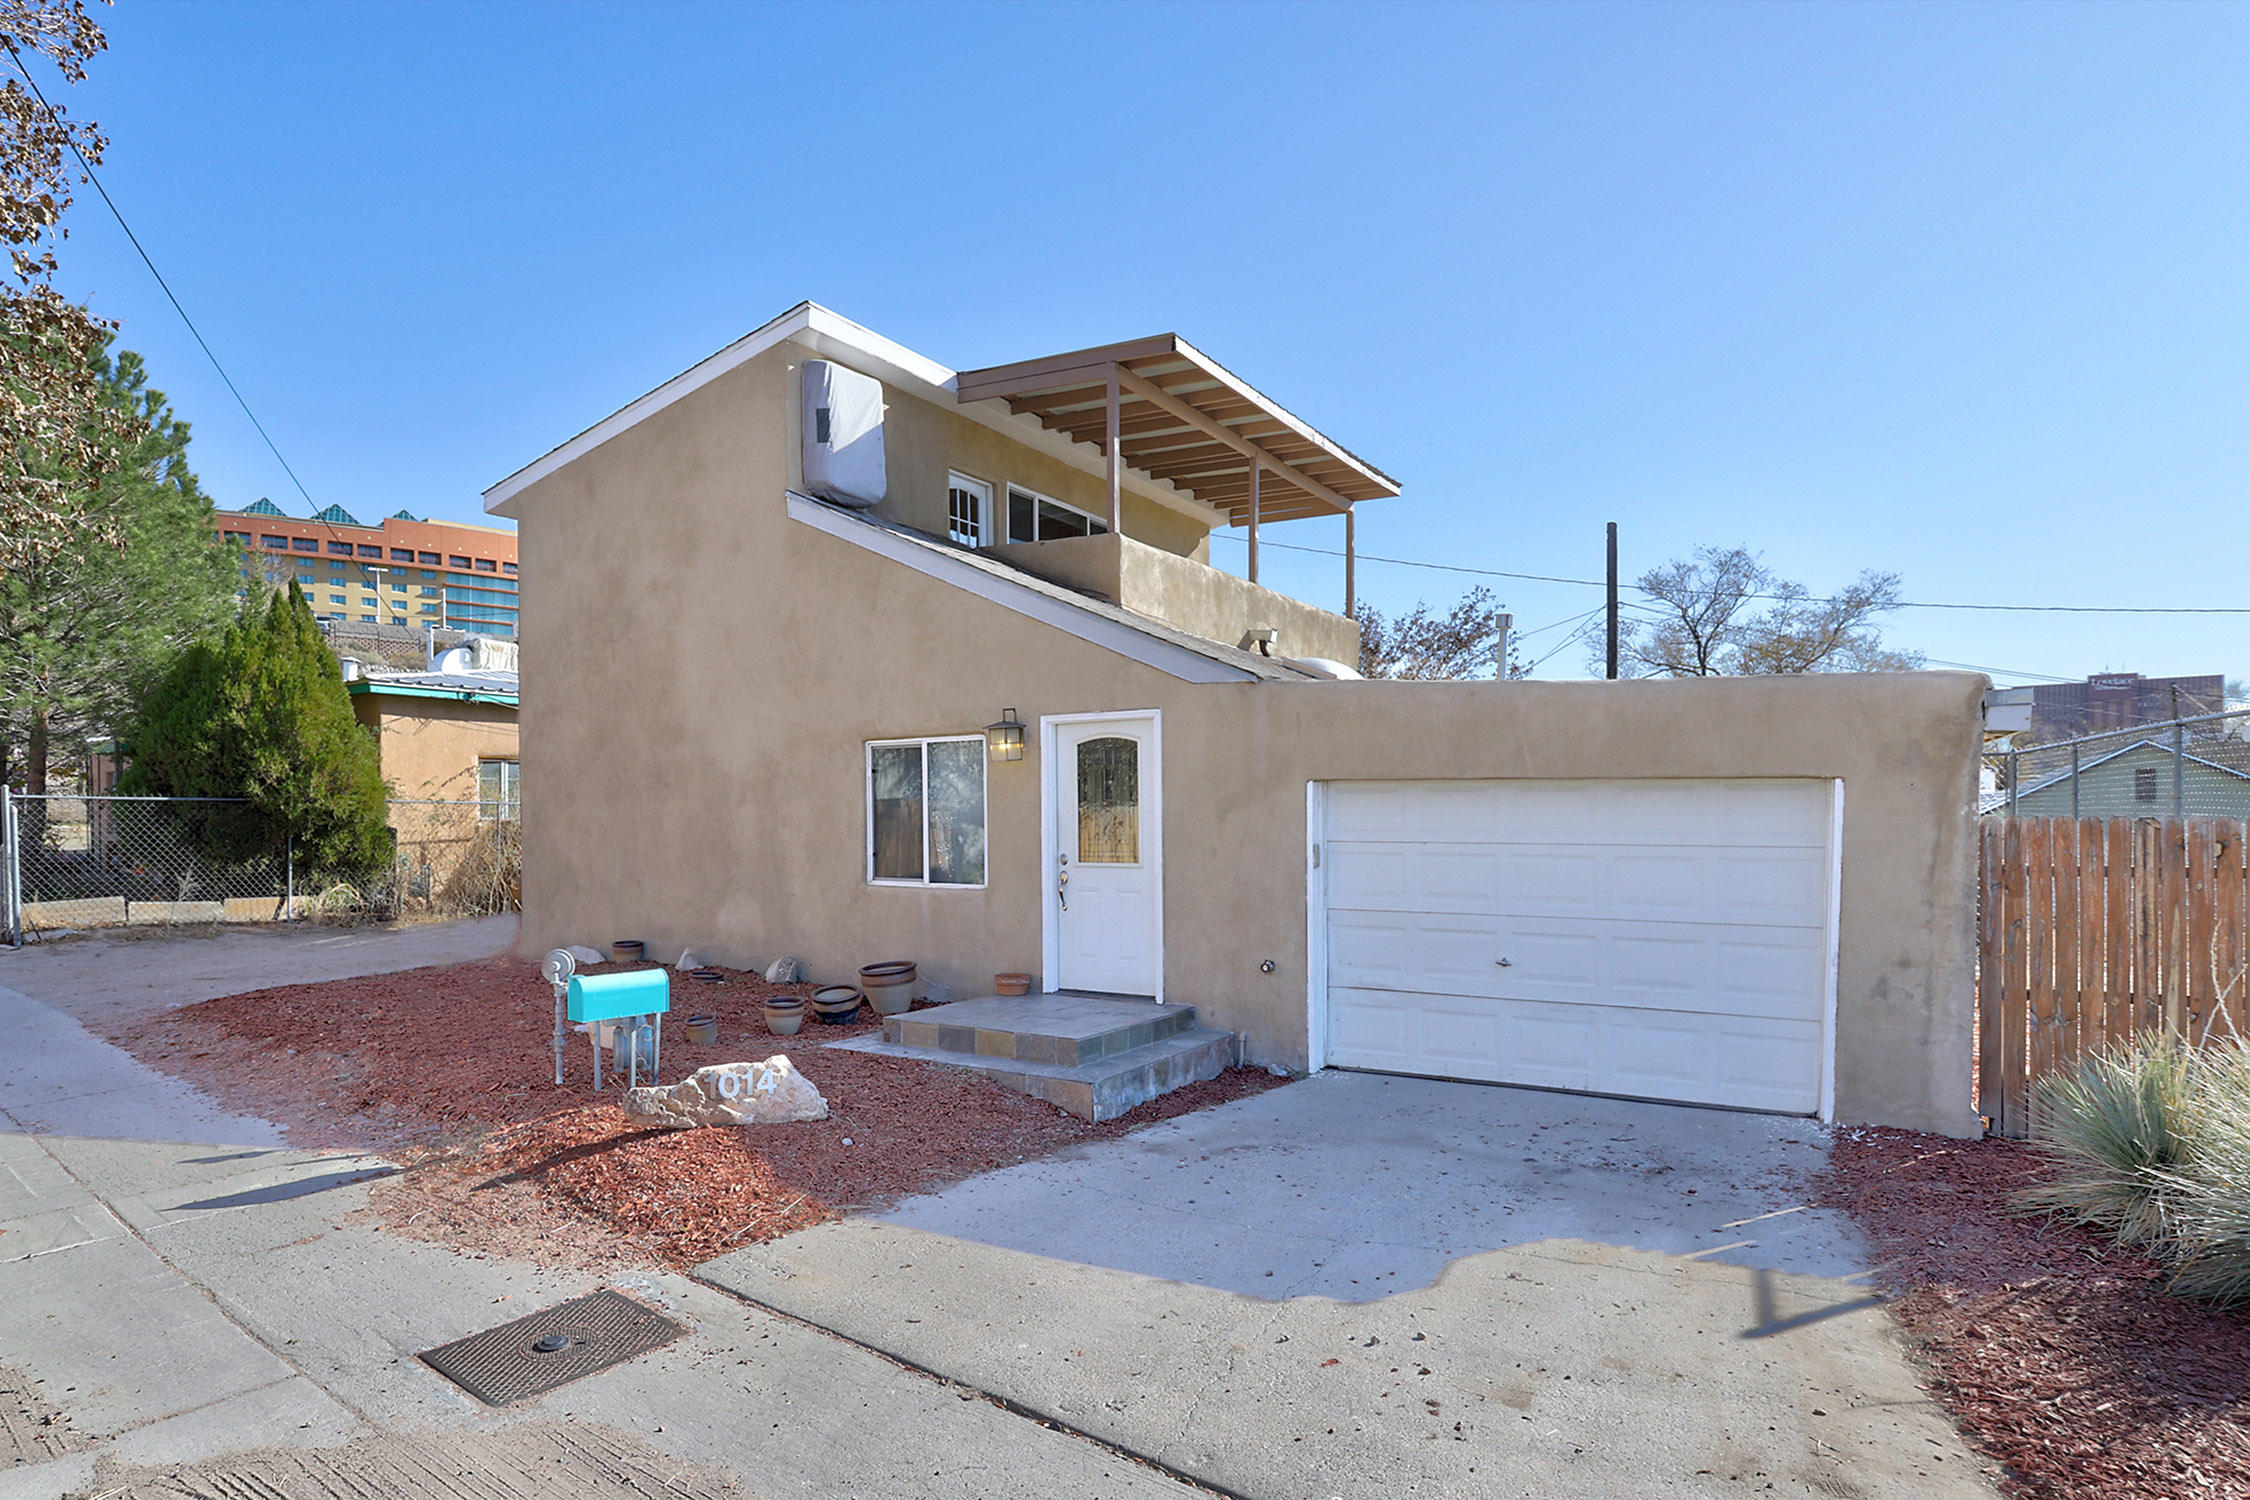 Perfect Artist partial adobe home, nestled in downtown, that takes full advantage of the city skyline views. Watch the sunset fade into the night sky as the city lights begin to twinkle for you from the second story primary bedroom balcony. Relax into the jet tub to finish off your day. Upstairs is private Primary suite oasis. Spacious downstairs with custom tile work, abundant skylights, & large kitchen with lots of cabinets & counter space. All appliances stay. Entry way with nicho opens to the greatroom for an open living & dining room perfect for entertaining.  Two downstairs bedrooms, & one has a huge walk in closet. Home has thermal windows, central forced air heat, & two evaporative coolers for zoned cooling. 3 off street parking spaces, one car garage, & completely private backyard